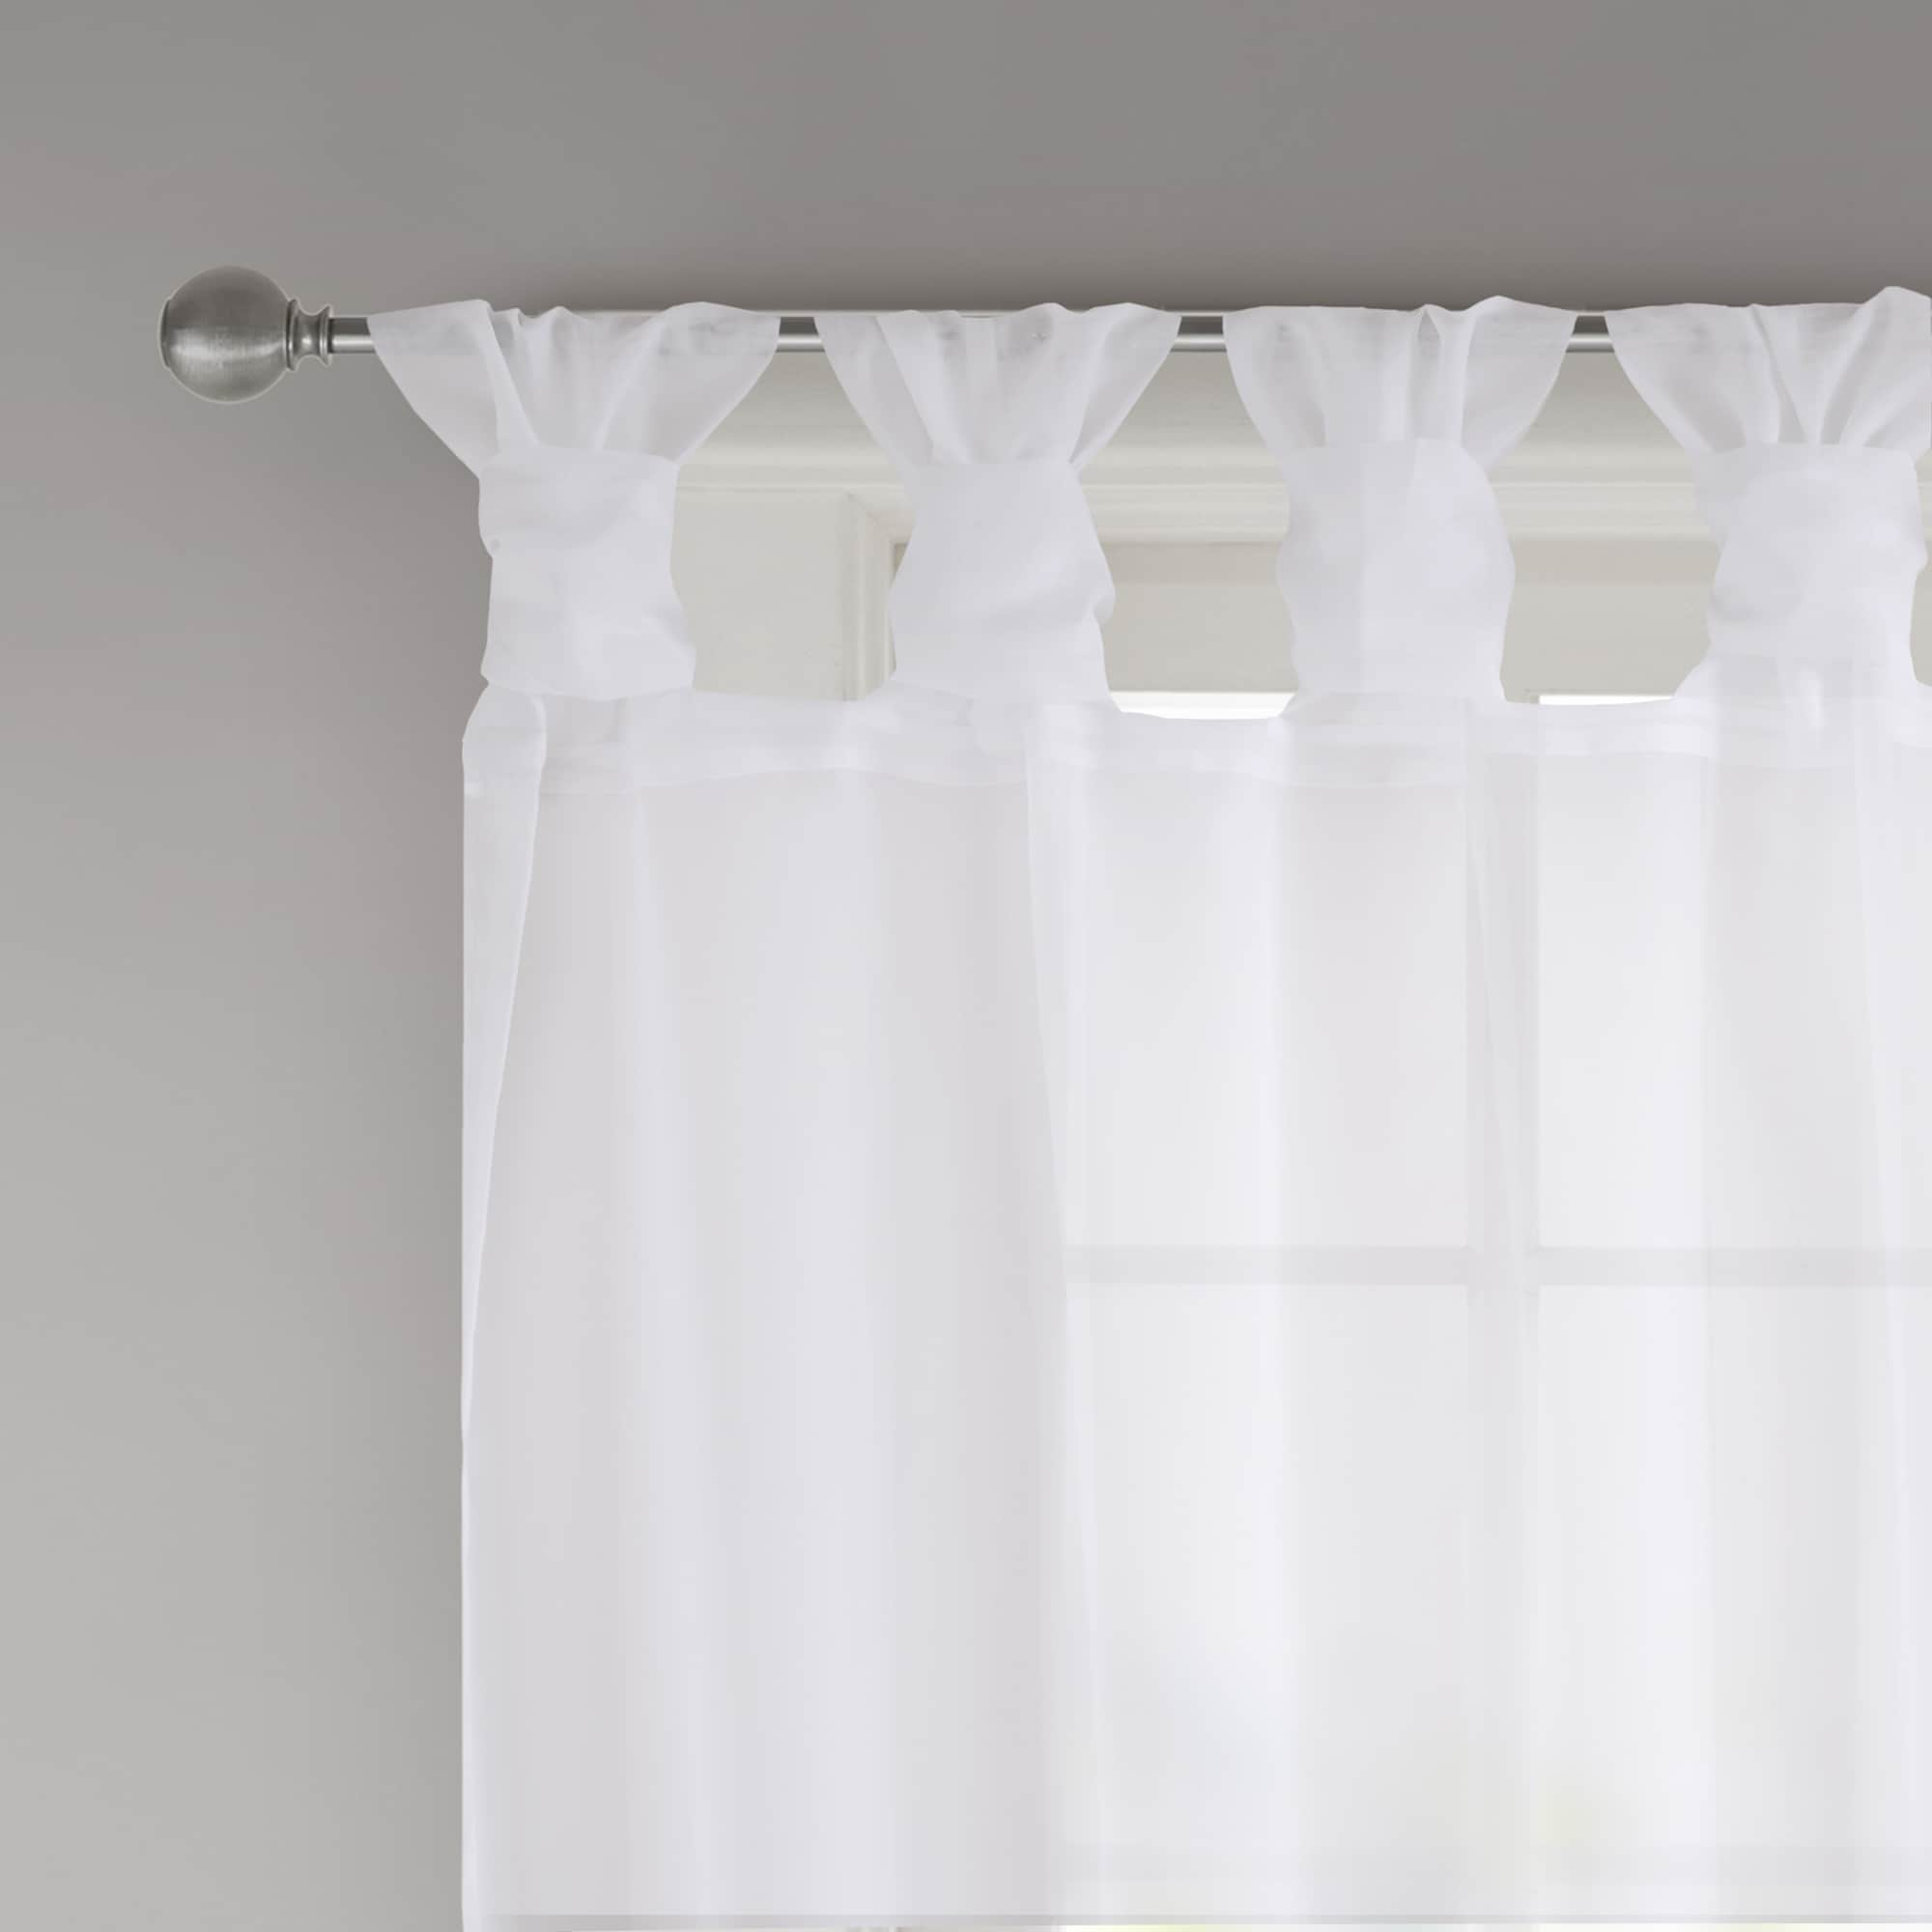 and orange designs awesome white ideas new voile curtain fresh sheer curtains of